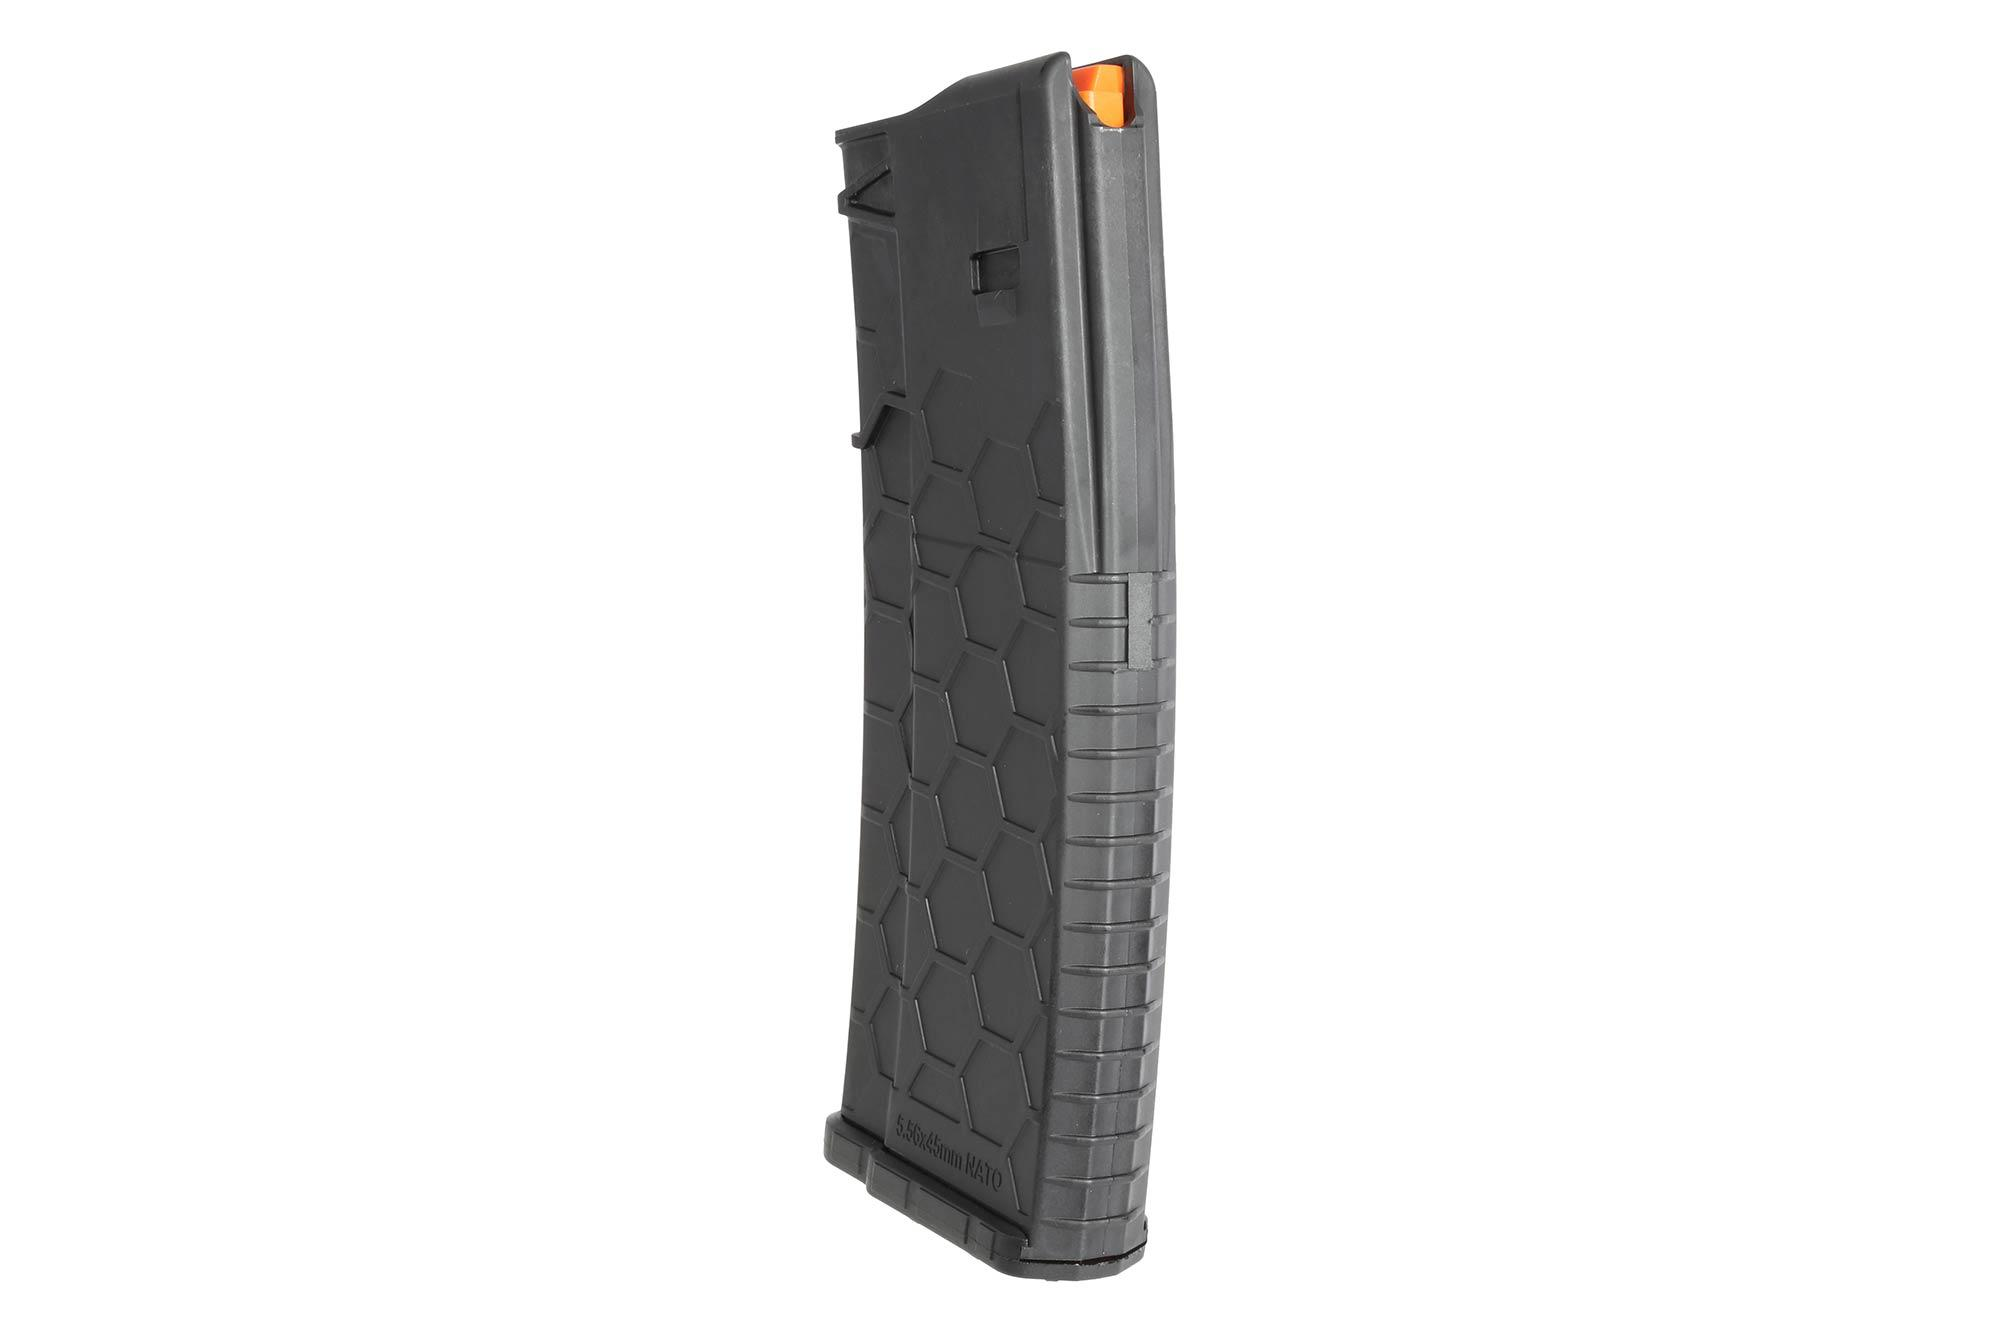 The Hexmag 10/30 5.56 NATO AR-15 magazine features an aggressive texture for a no slip grip